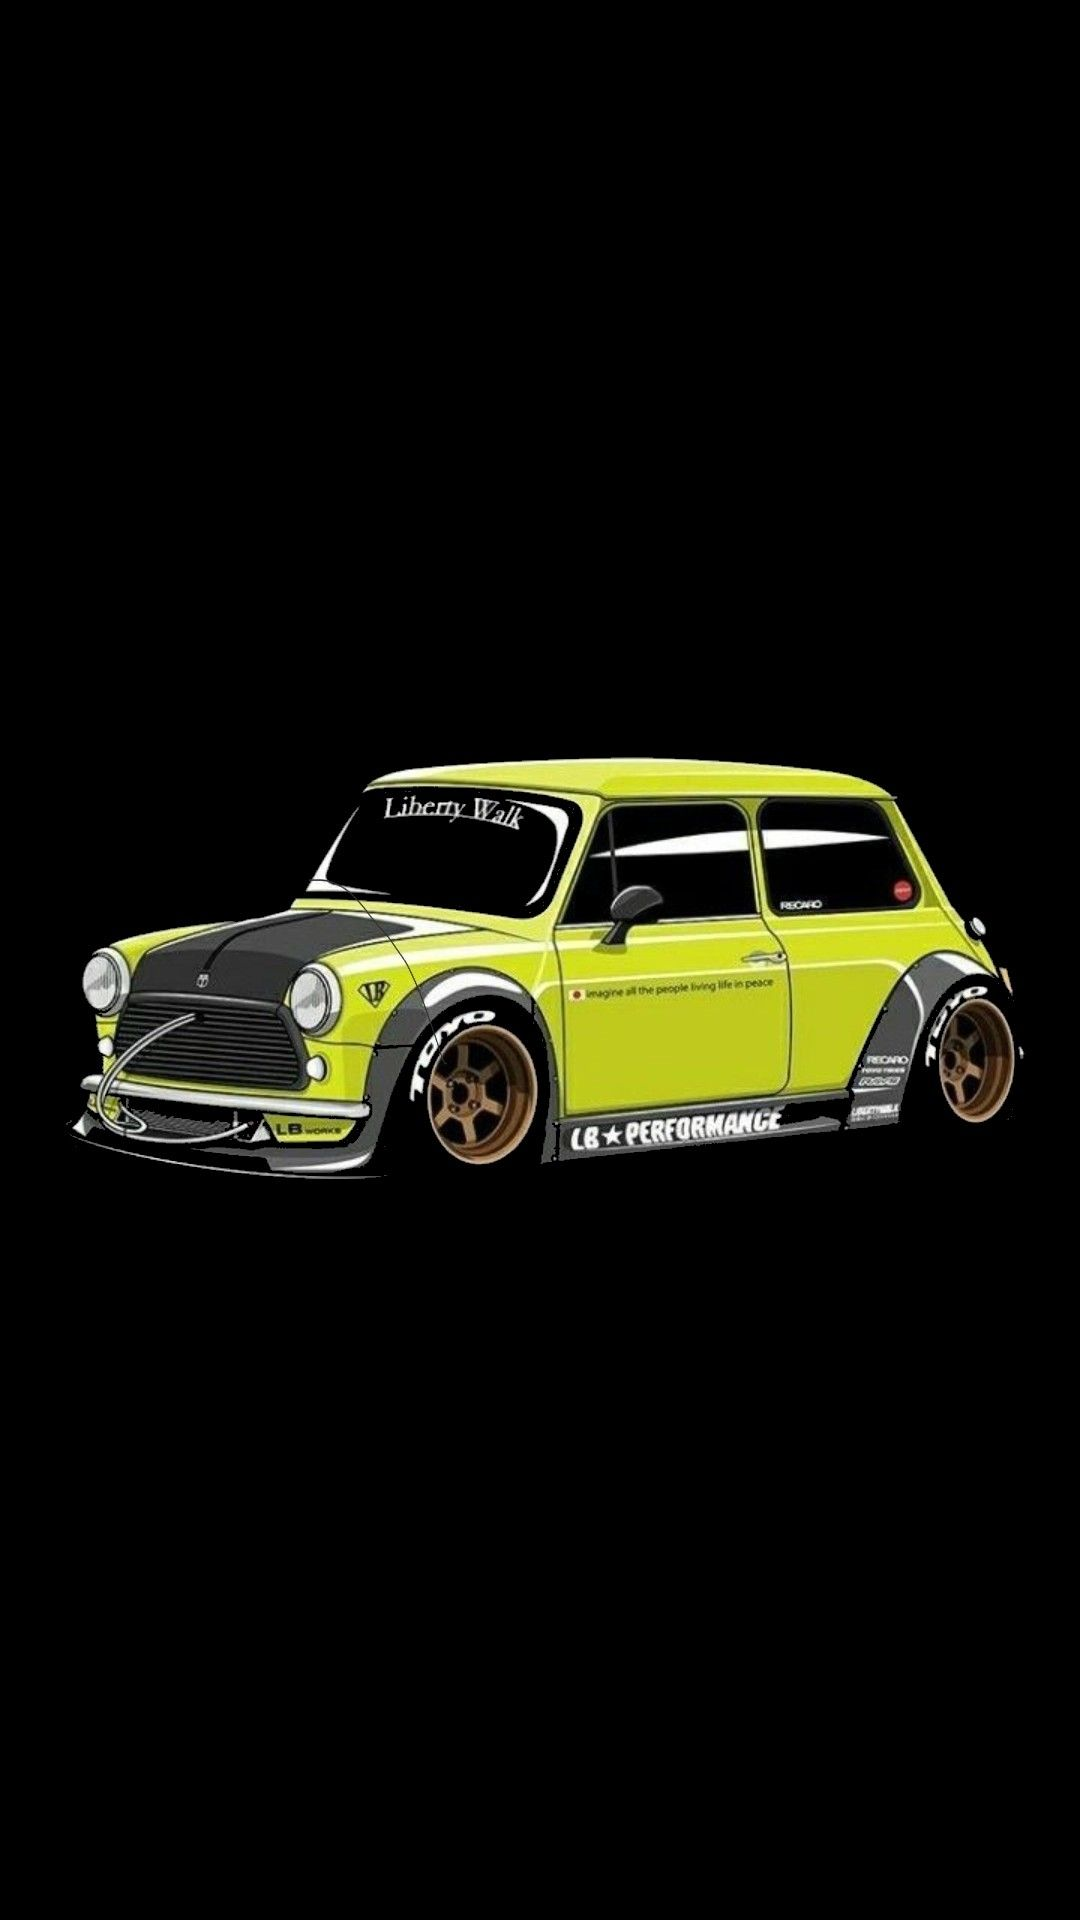 Coutning Cars Wallpaper Mr Bean Mini Cooper Crazy Modified Car Nimation Coches